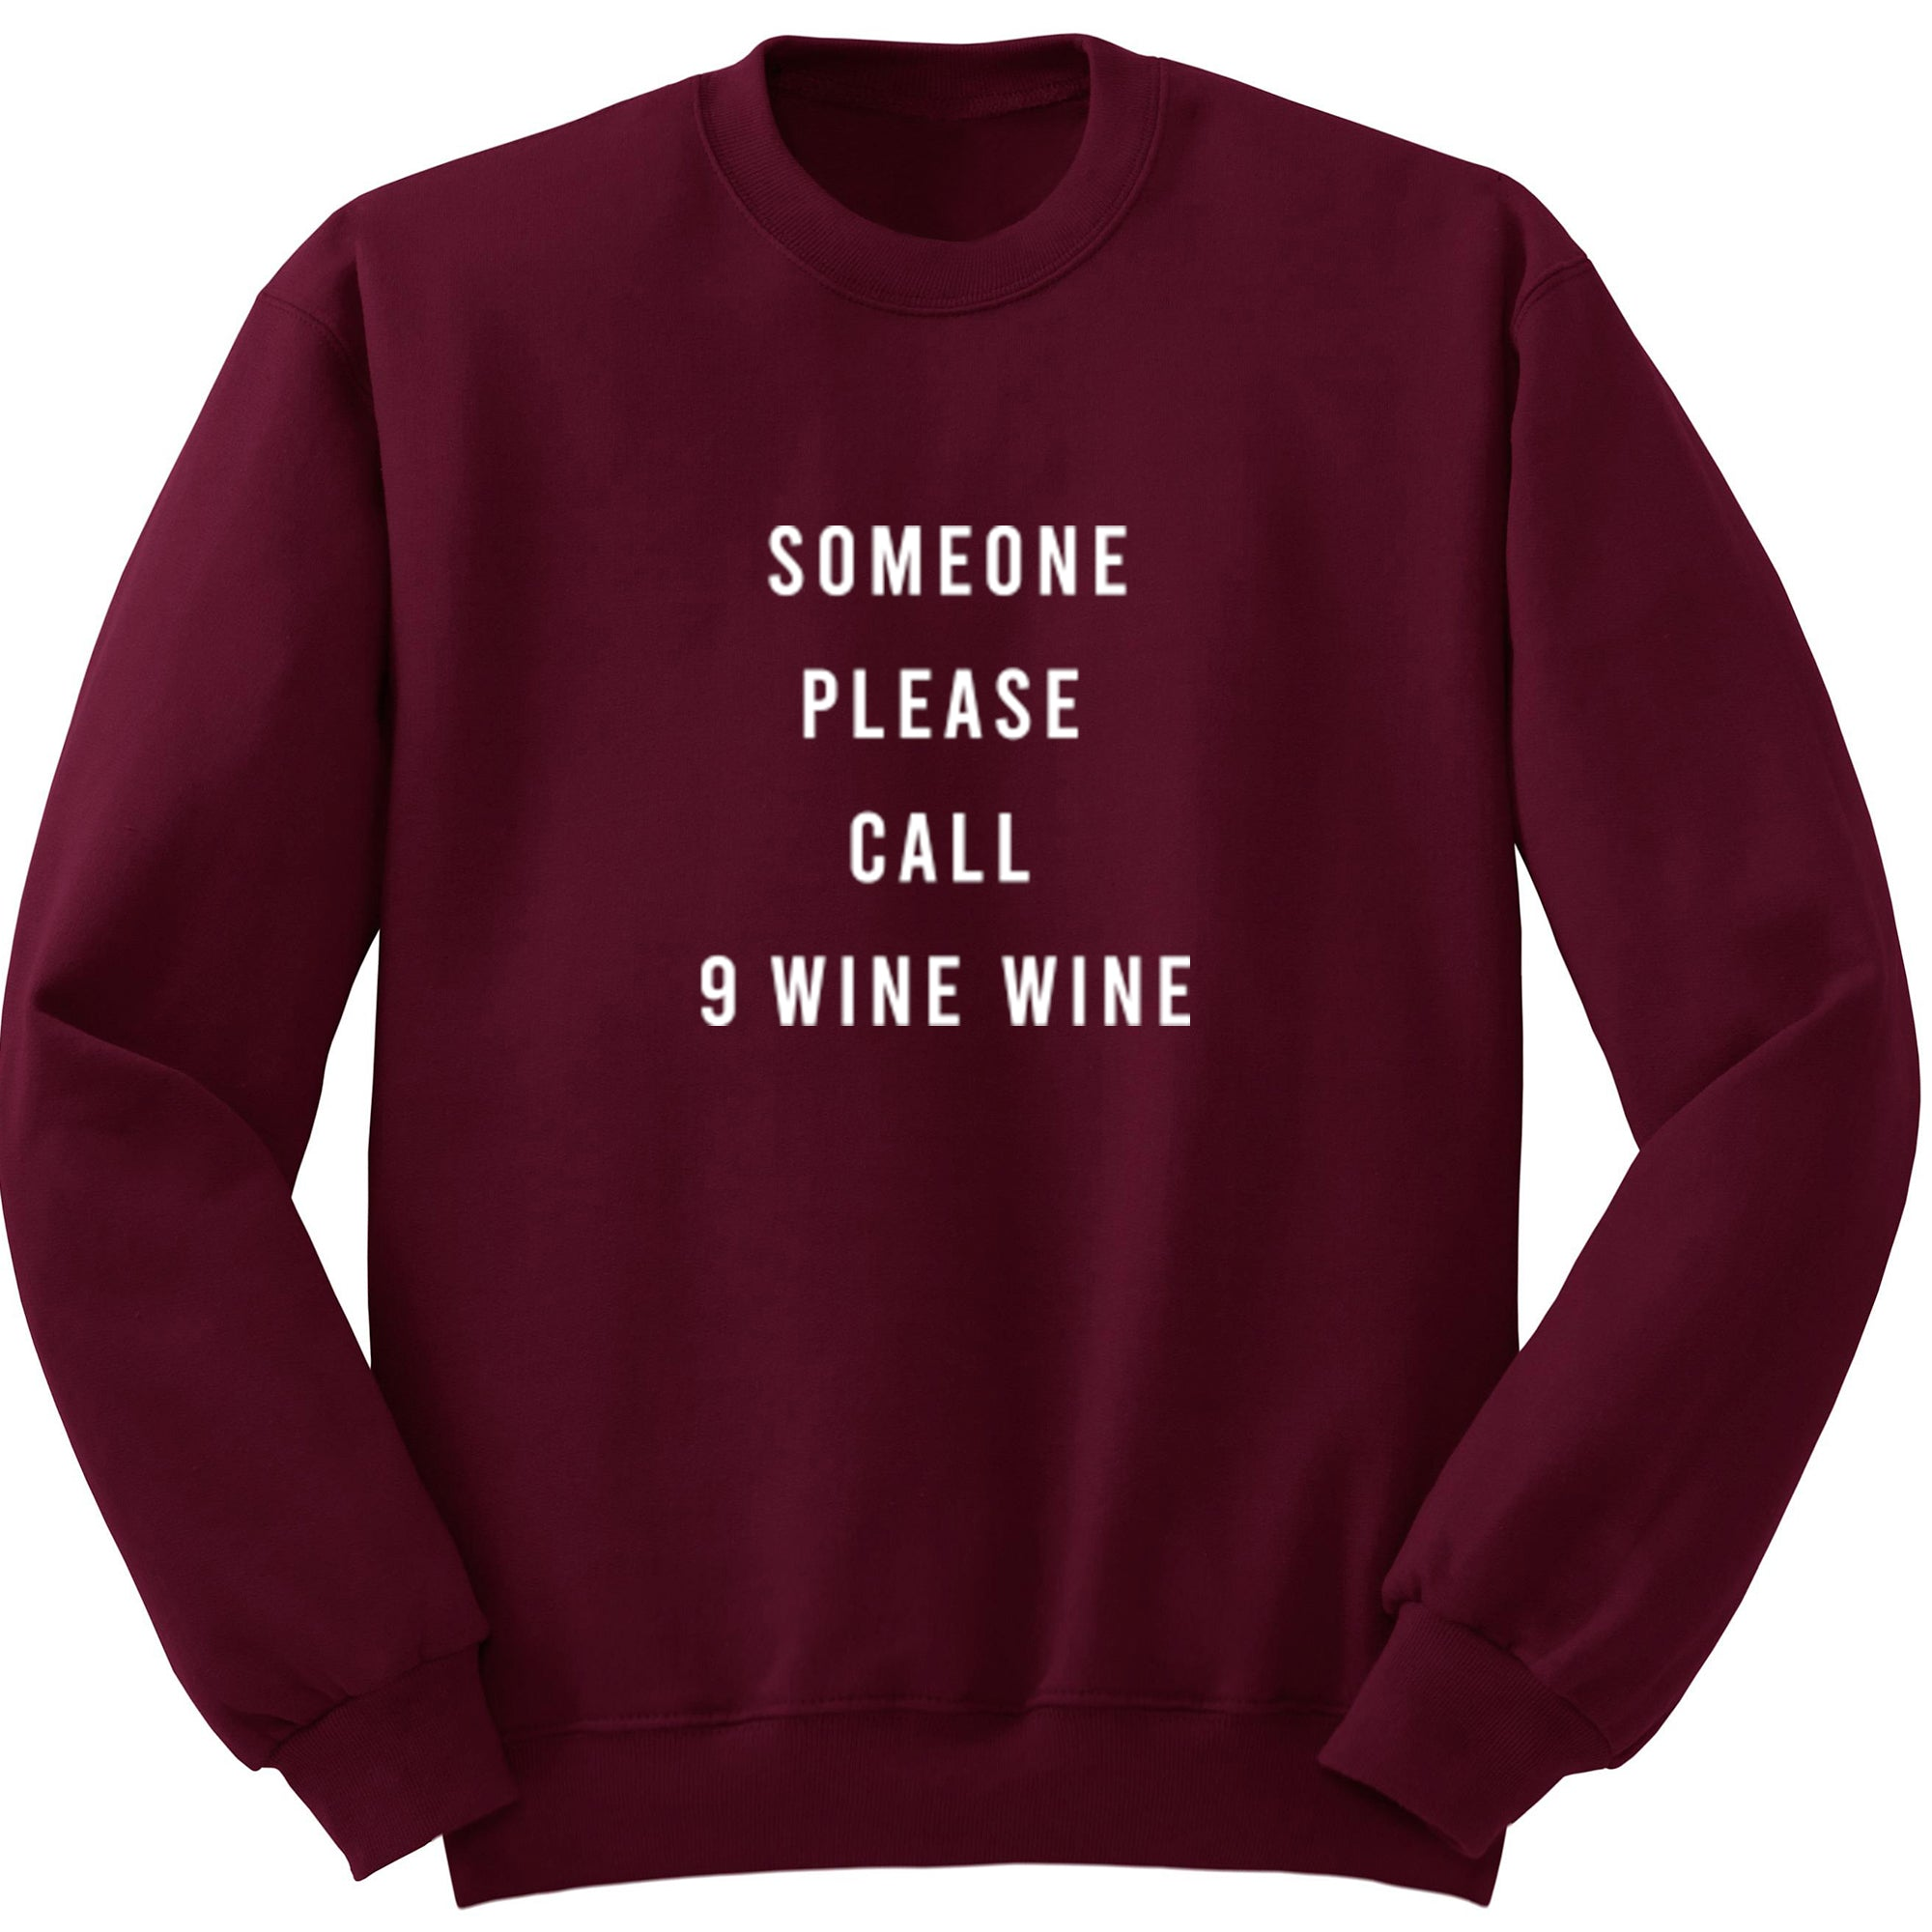 Someone Please Call 9 Wine Wine Unisex Jumper S0915 - Illustrated Identity Ltd.